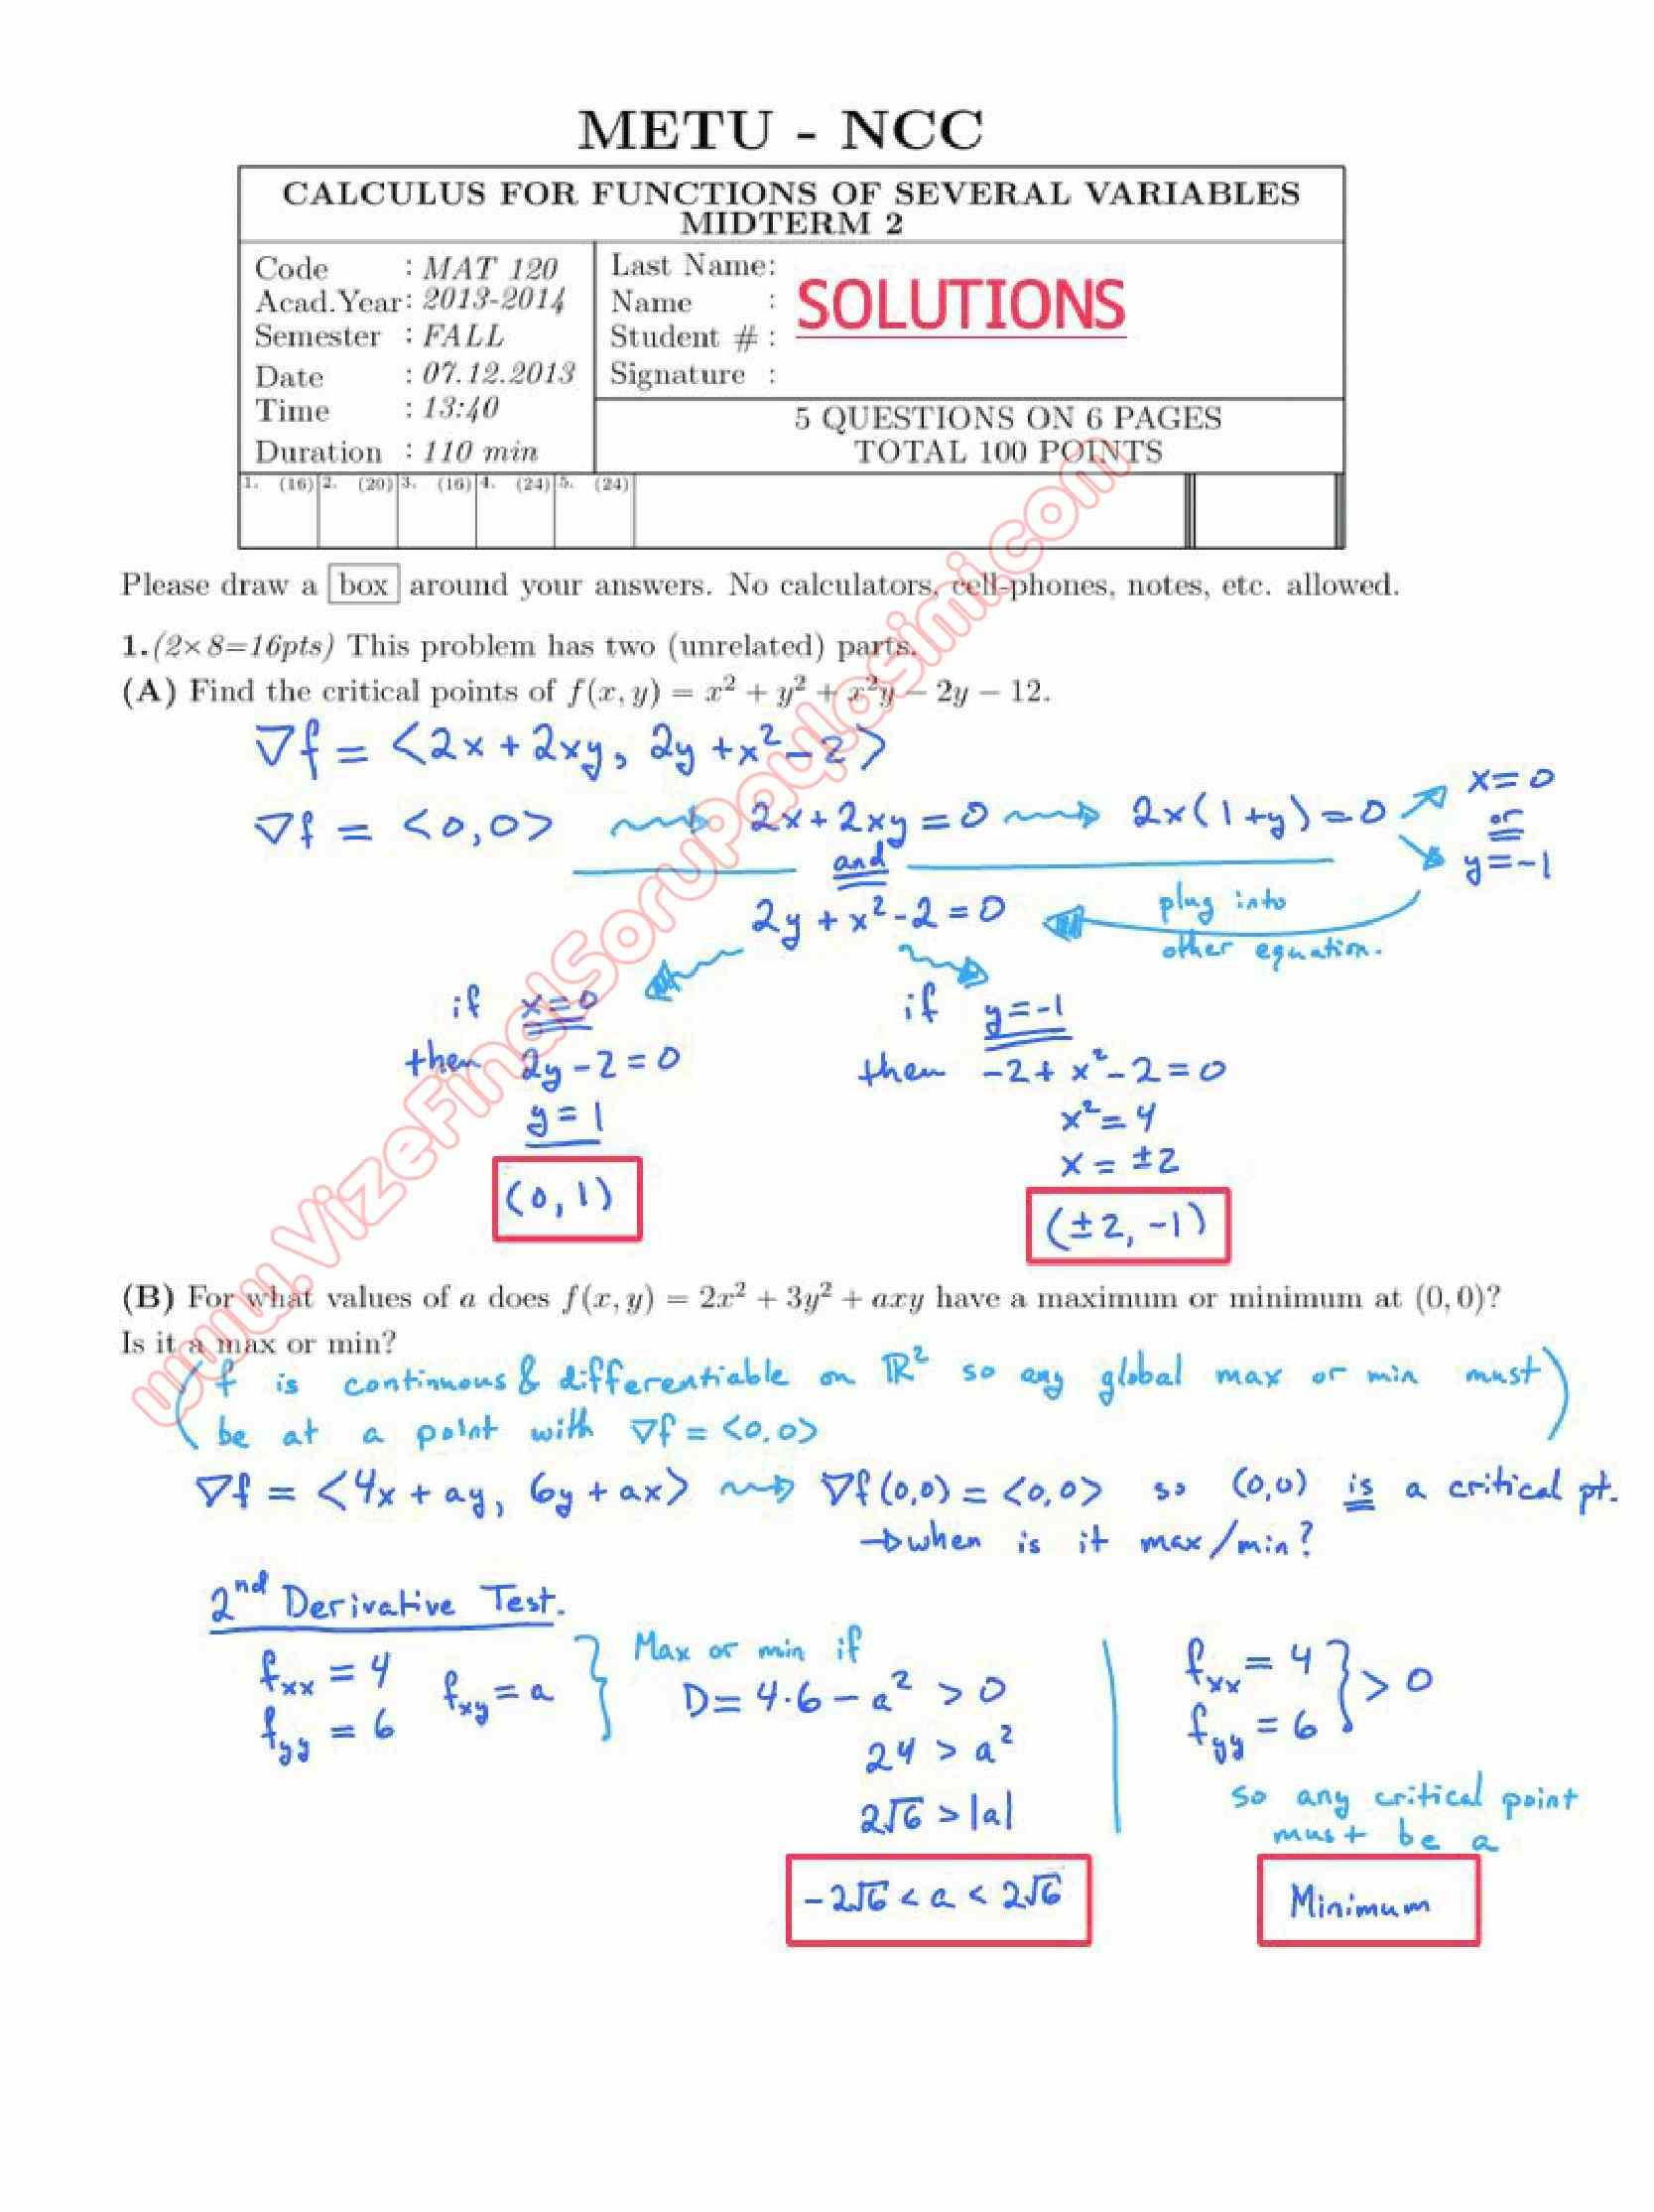 fluids midterm exam 2 solutions Study 9/25- review 2: midterm exam, acid base and electrolytes flashcards from kathryn kudlaty's class online, or in brainscape's iphone or android app learn faster with spaced repetition.